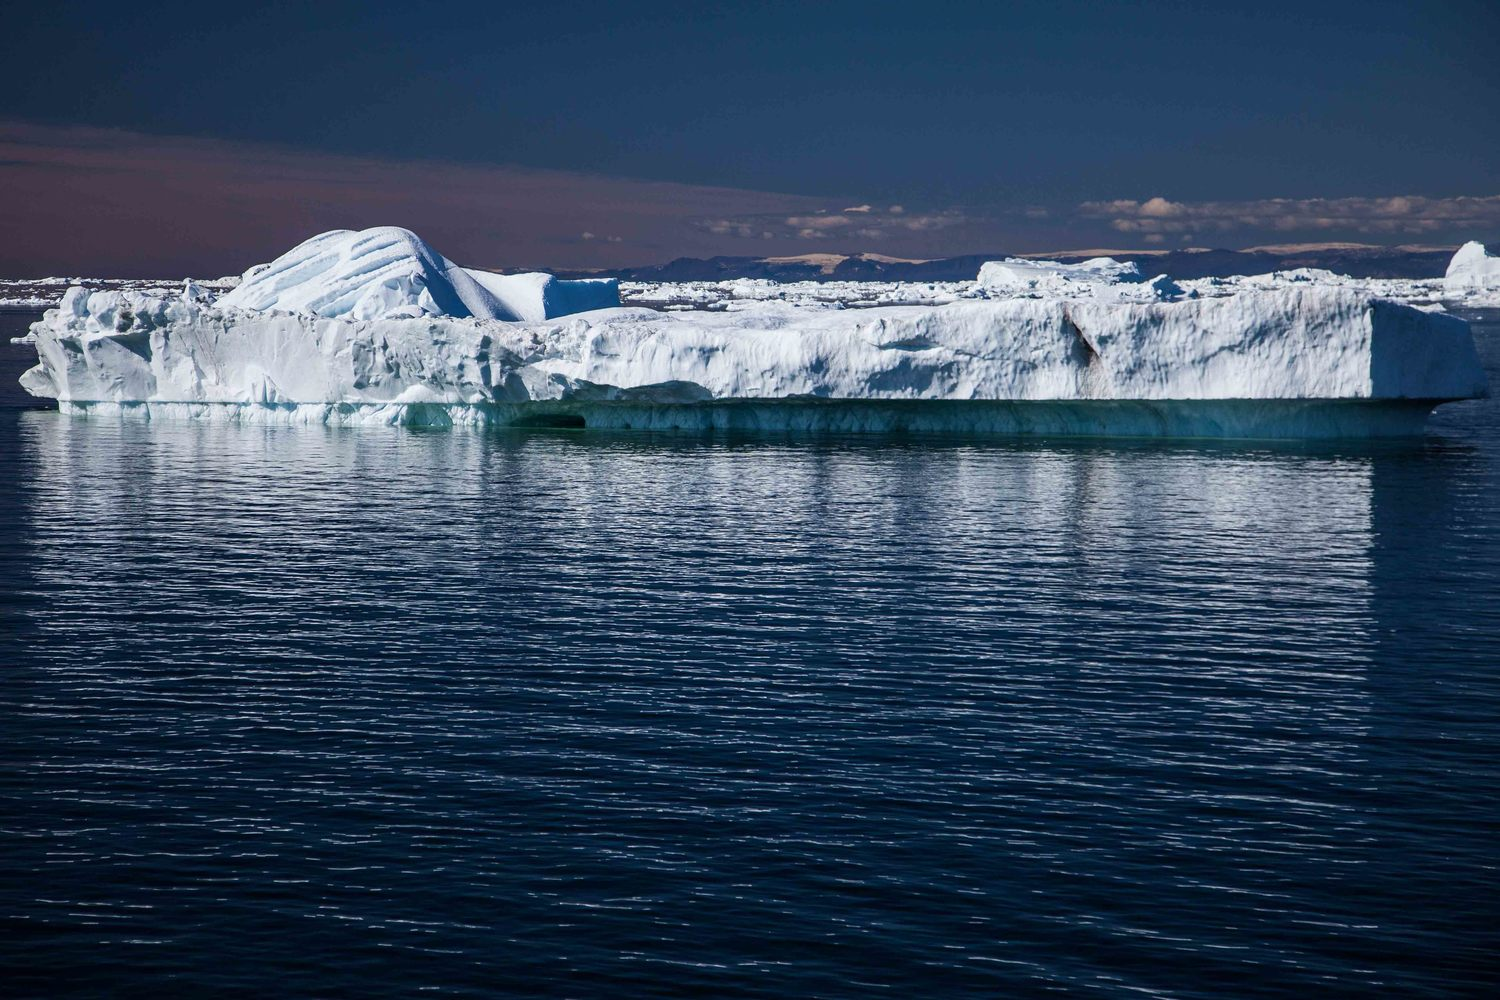 The Arctic is truly an amazing place to take pictures, I found it so fun and energizing to be out on deck taking pictures of the icebergs we passed.